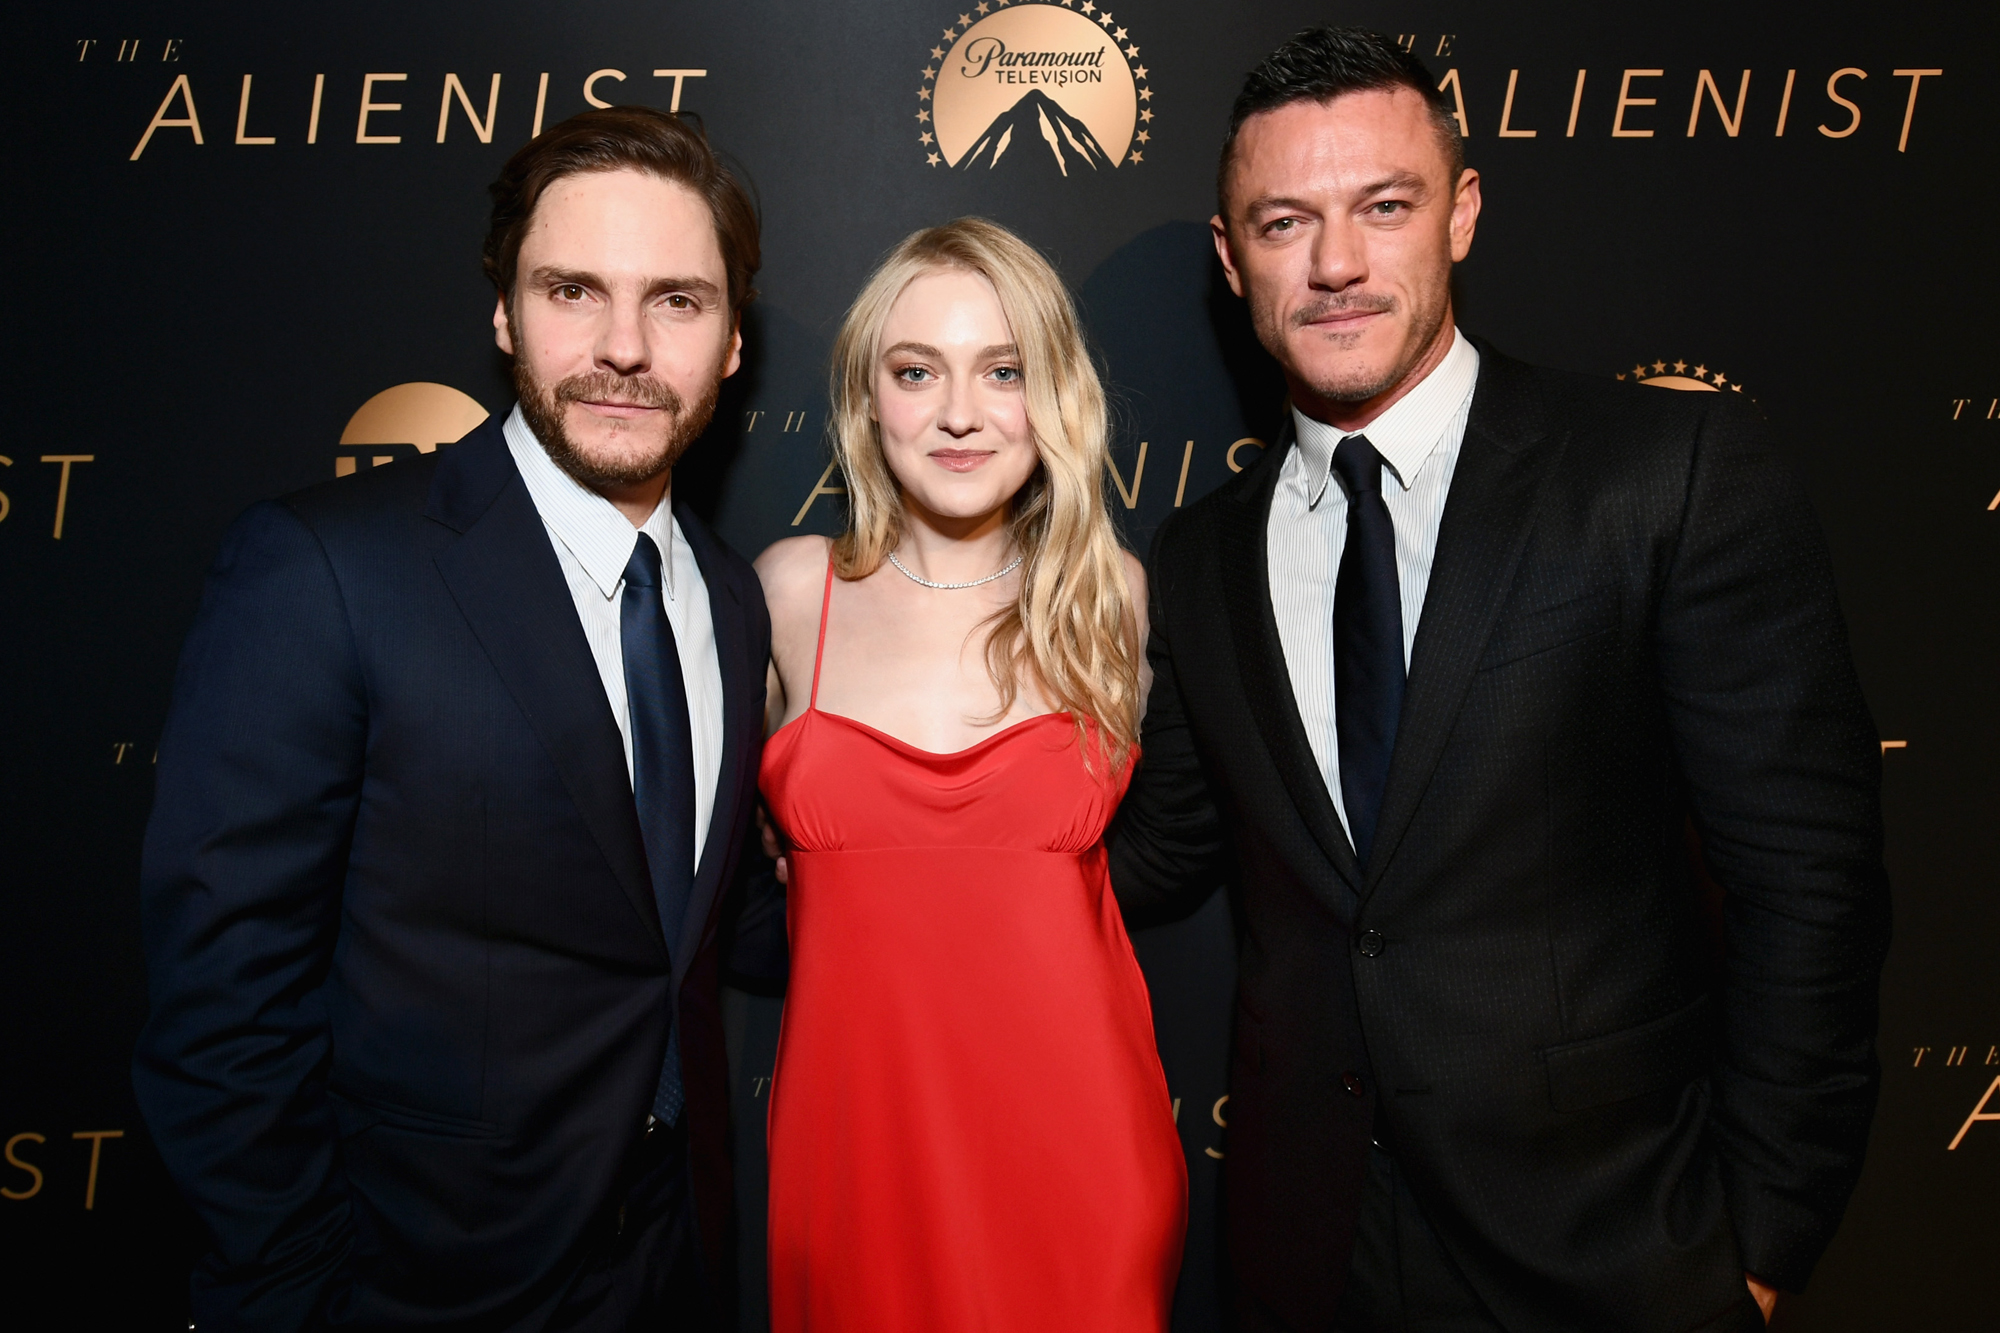 , The Alienist Season 2 Release Date, Cast, Plot, and Return To Medieval Time